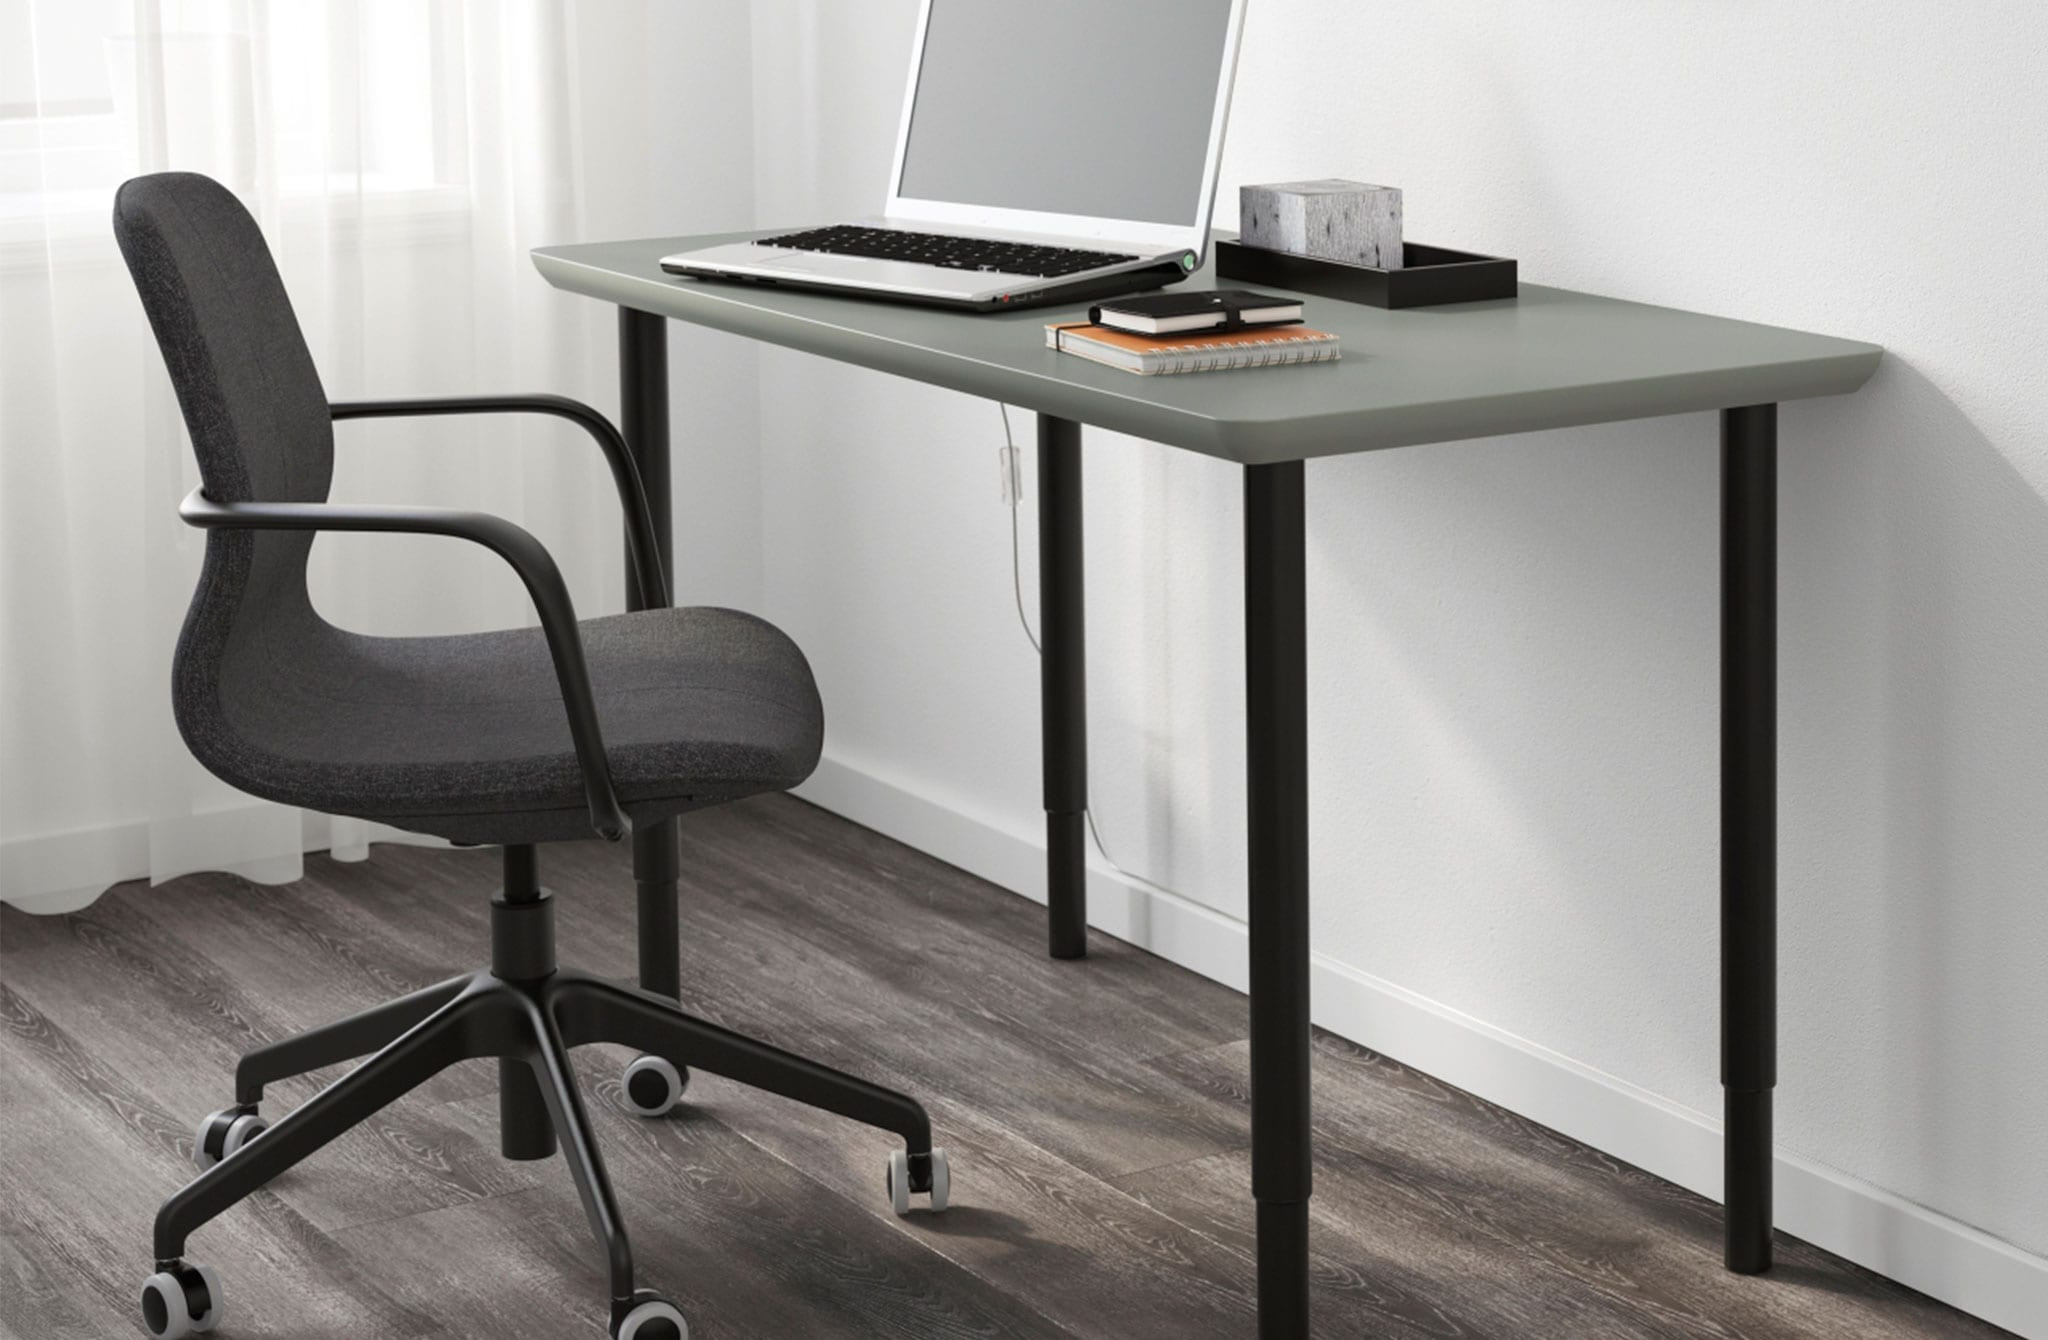 Best ideas about Office Furniture Ikea . Save or Pin New fice Furniture Now.